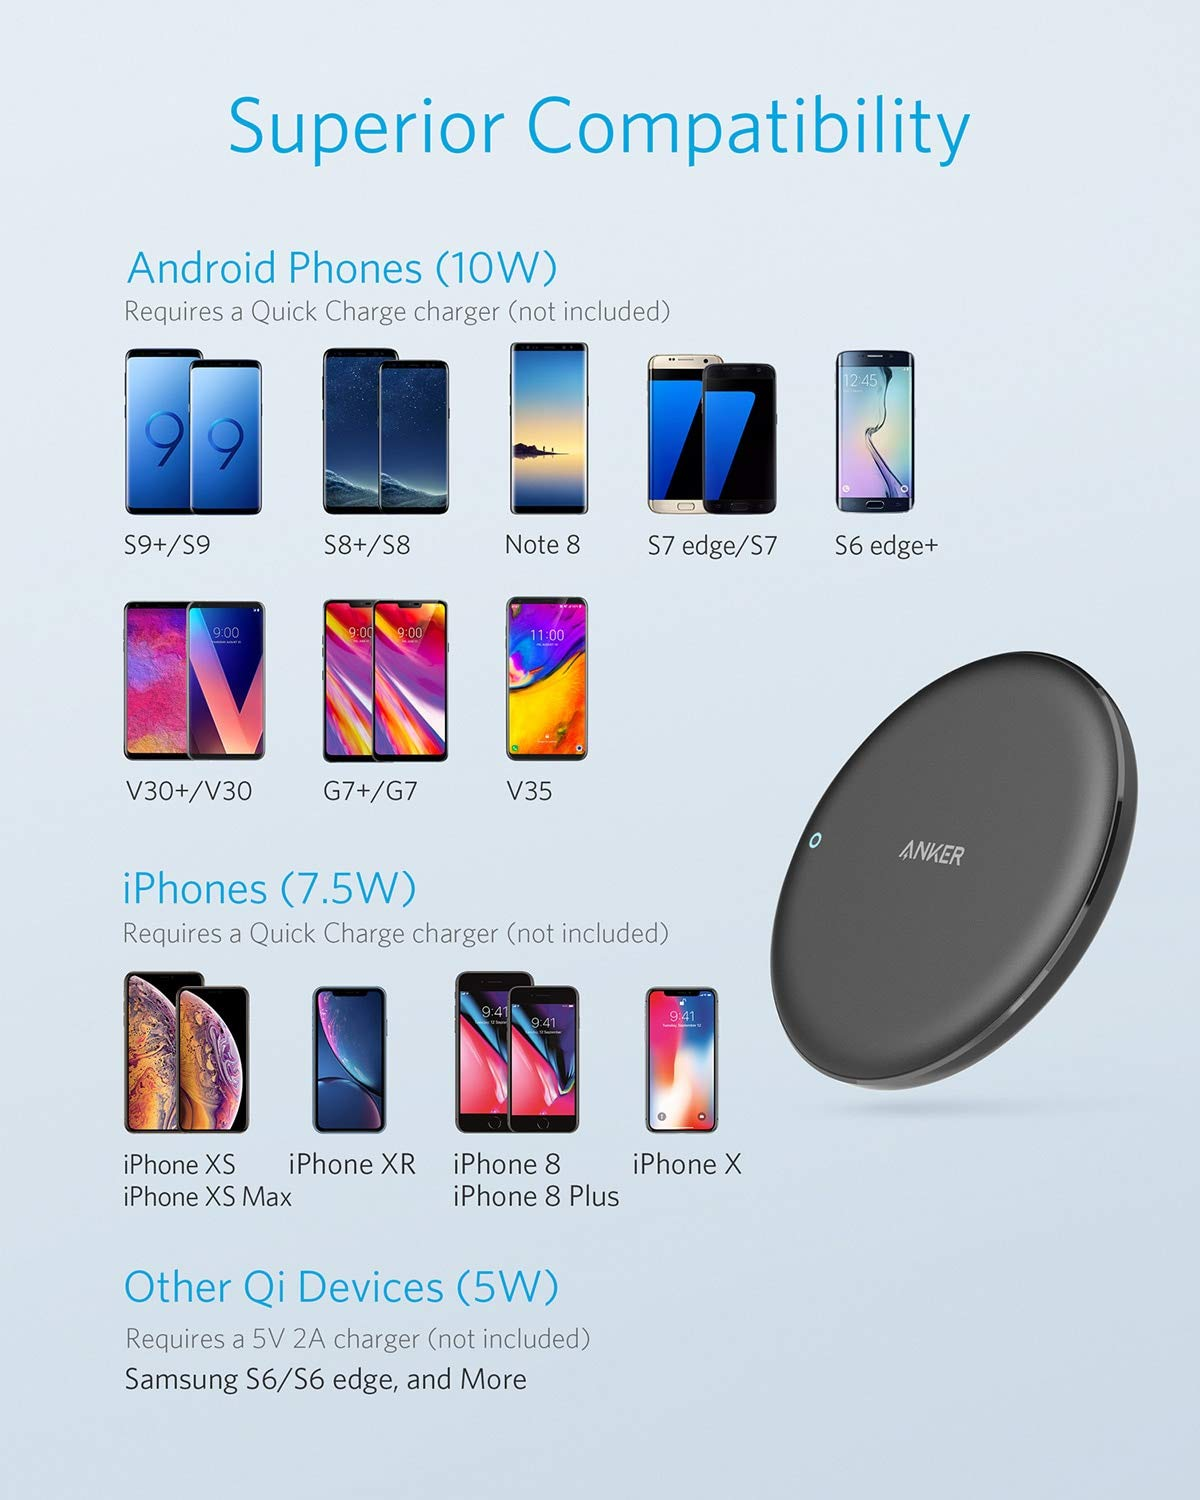 7.5W Compatible iPhone Xs Max//XR//XS//X//8//8 Plus 10W Charges Galaxy S9//S9+//S8//S8+ with Quick Charge Adapter Anker PowerWave 7.5 Fast Wireless Charging Pad with Internal Cooling Fan Qi-Certified